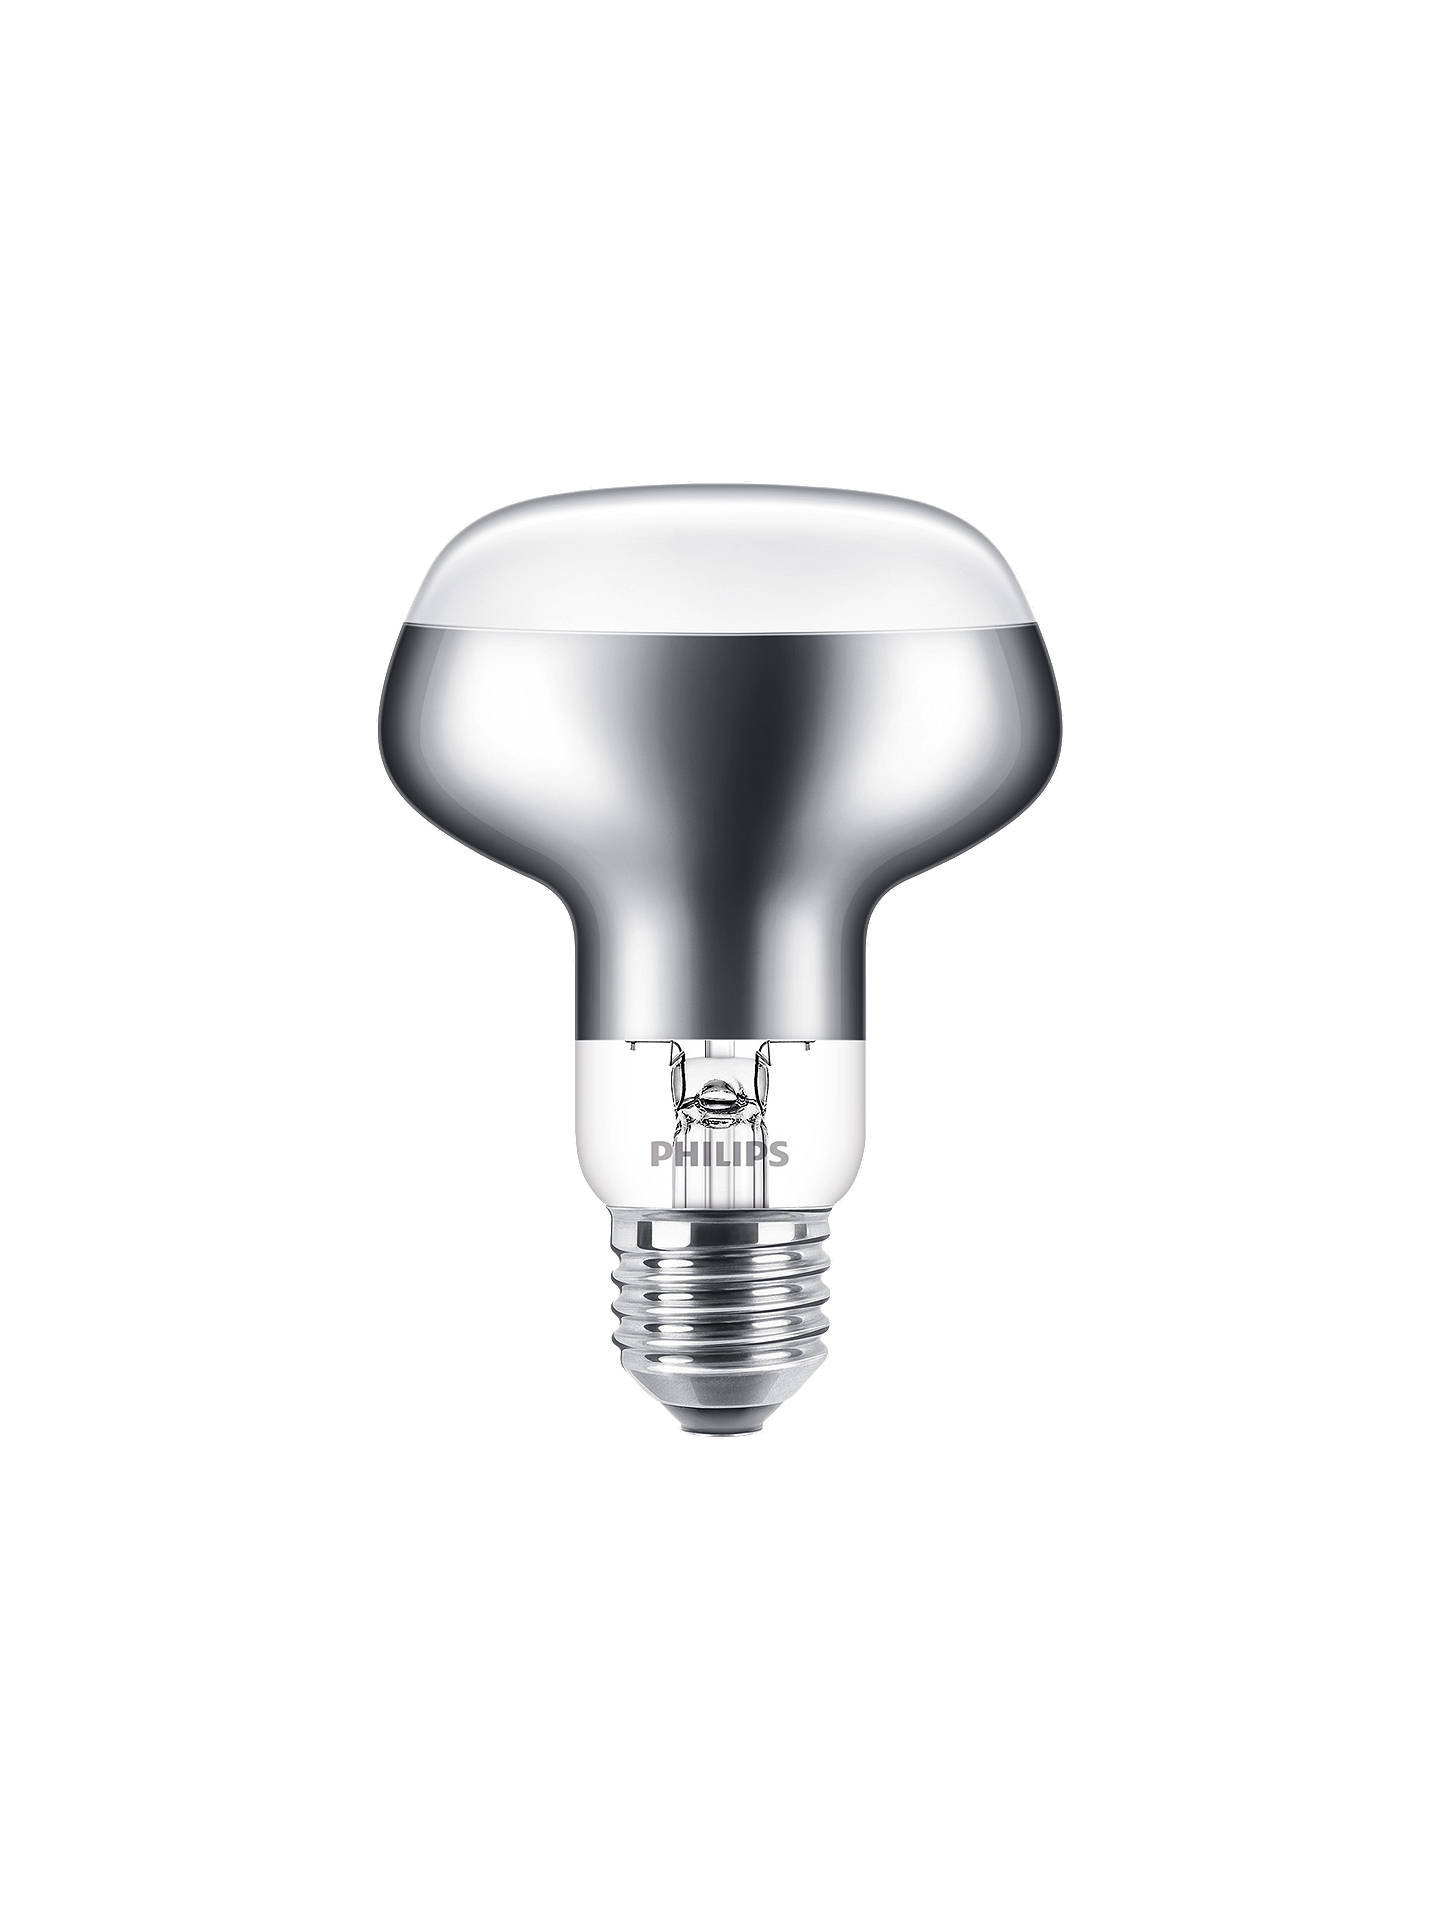 Philips 5w Led Energy Efficient Es R80 Reflector Bulb Non Dimmable